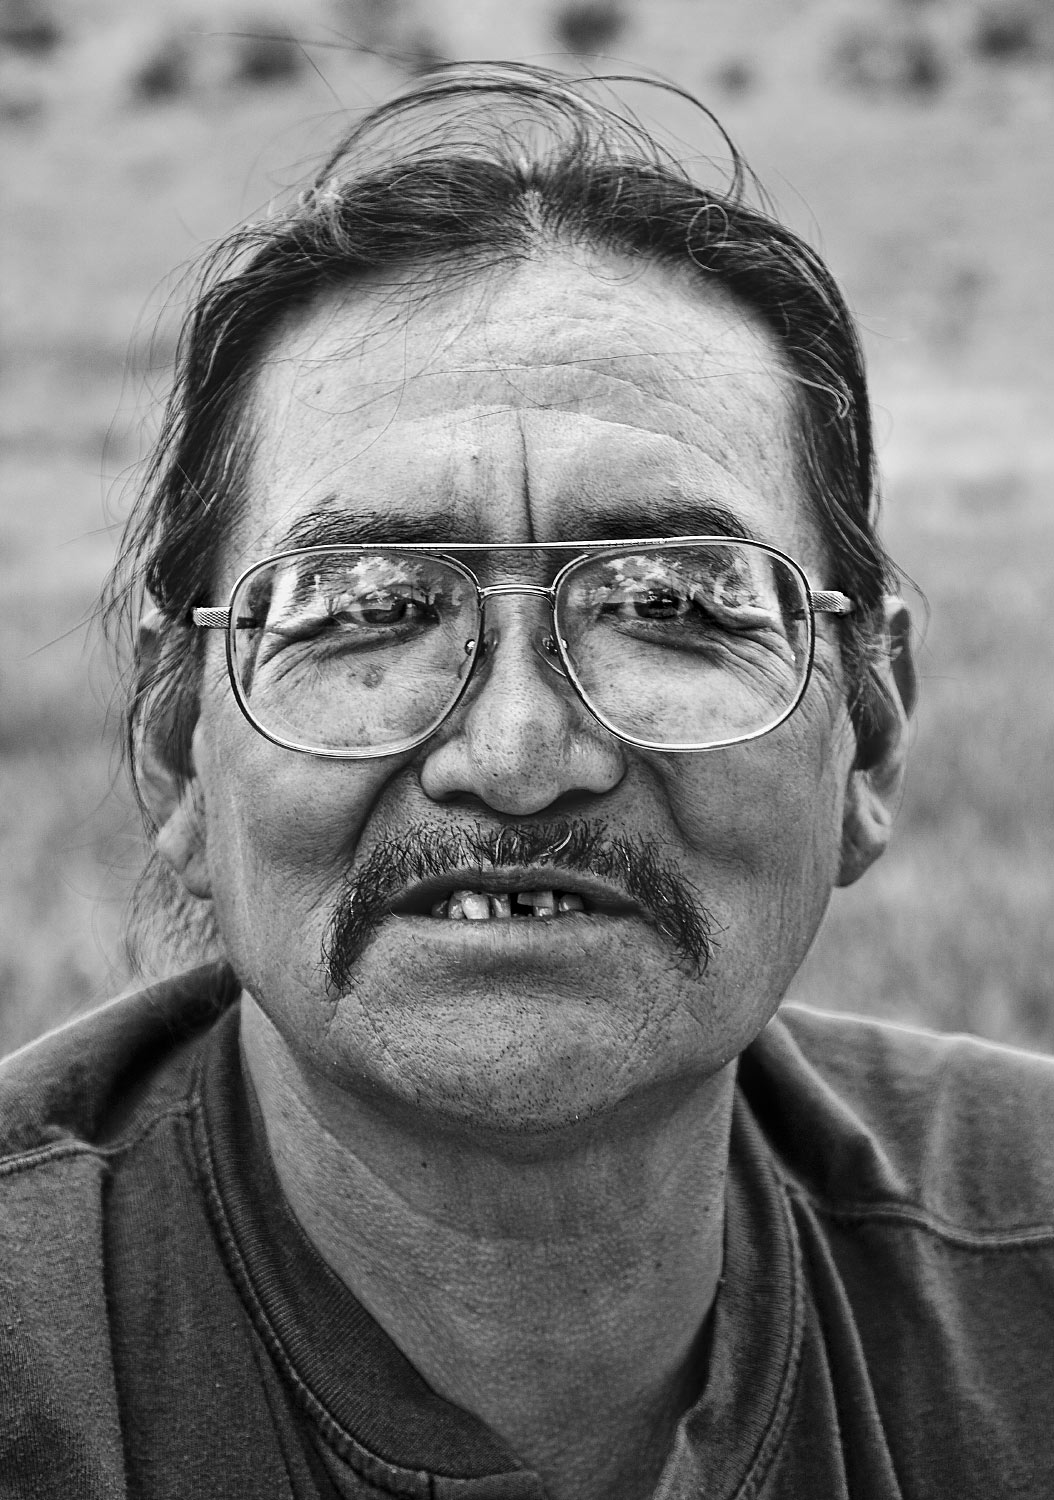 Jicarilla Apache black and white portrait Philmont Scout Ranch